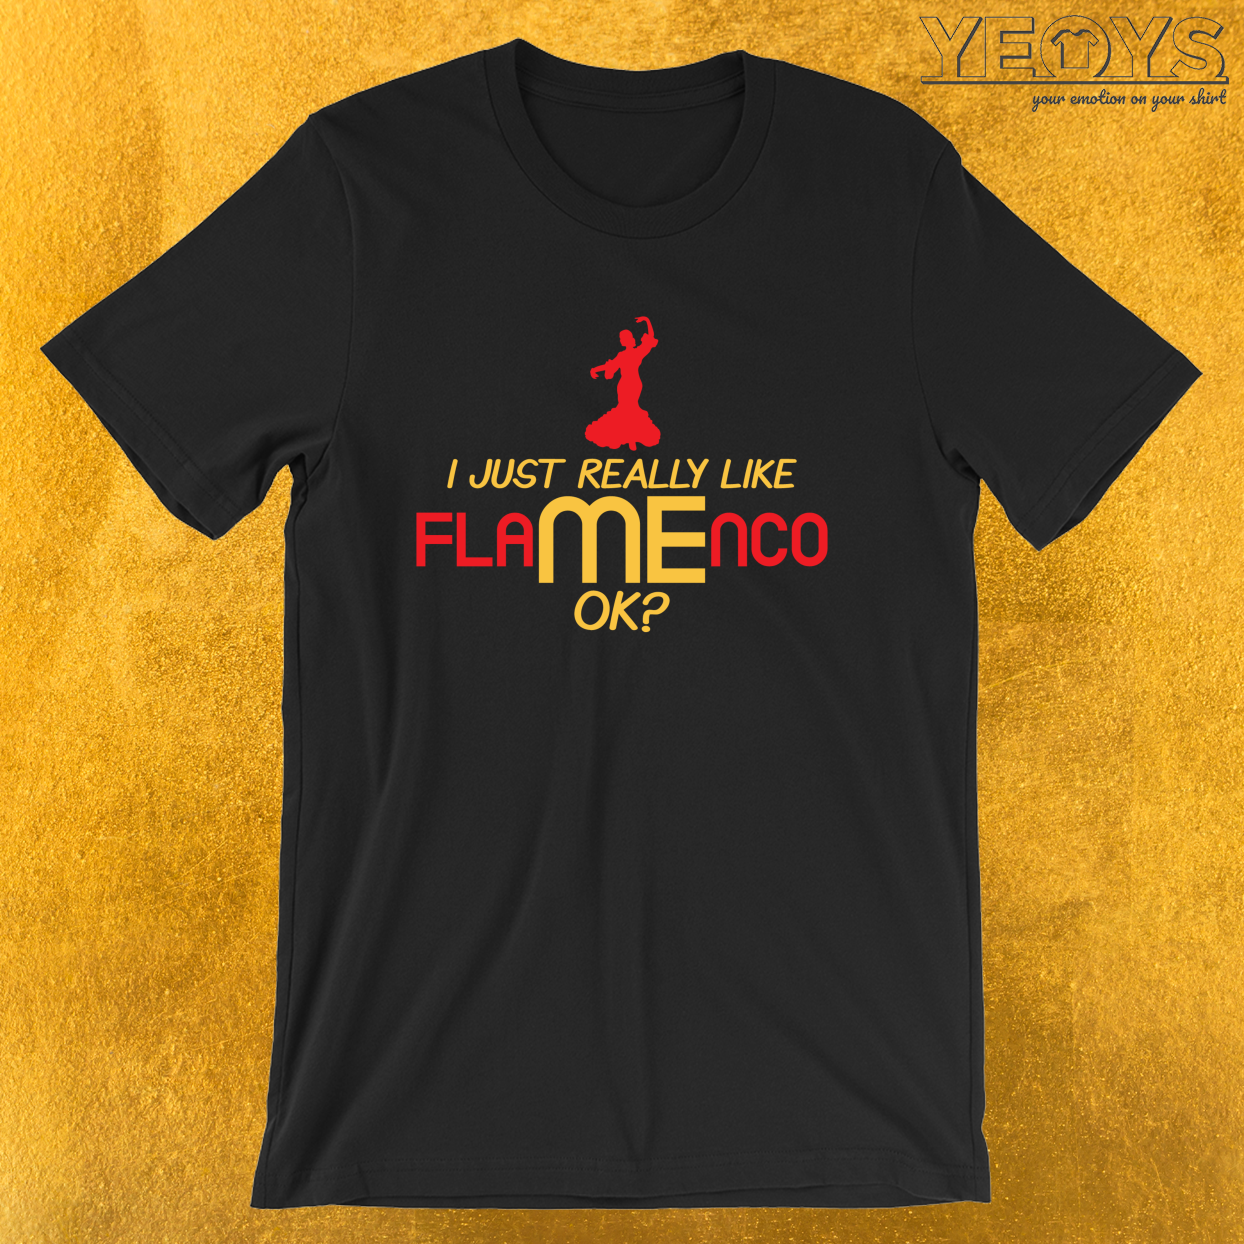 I Just Really Like Flamenco – Flamenco Tee